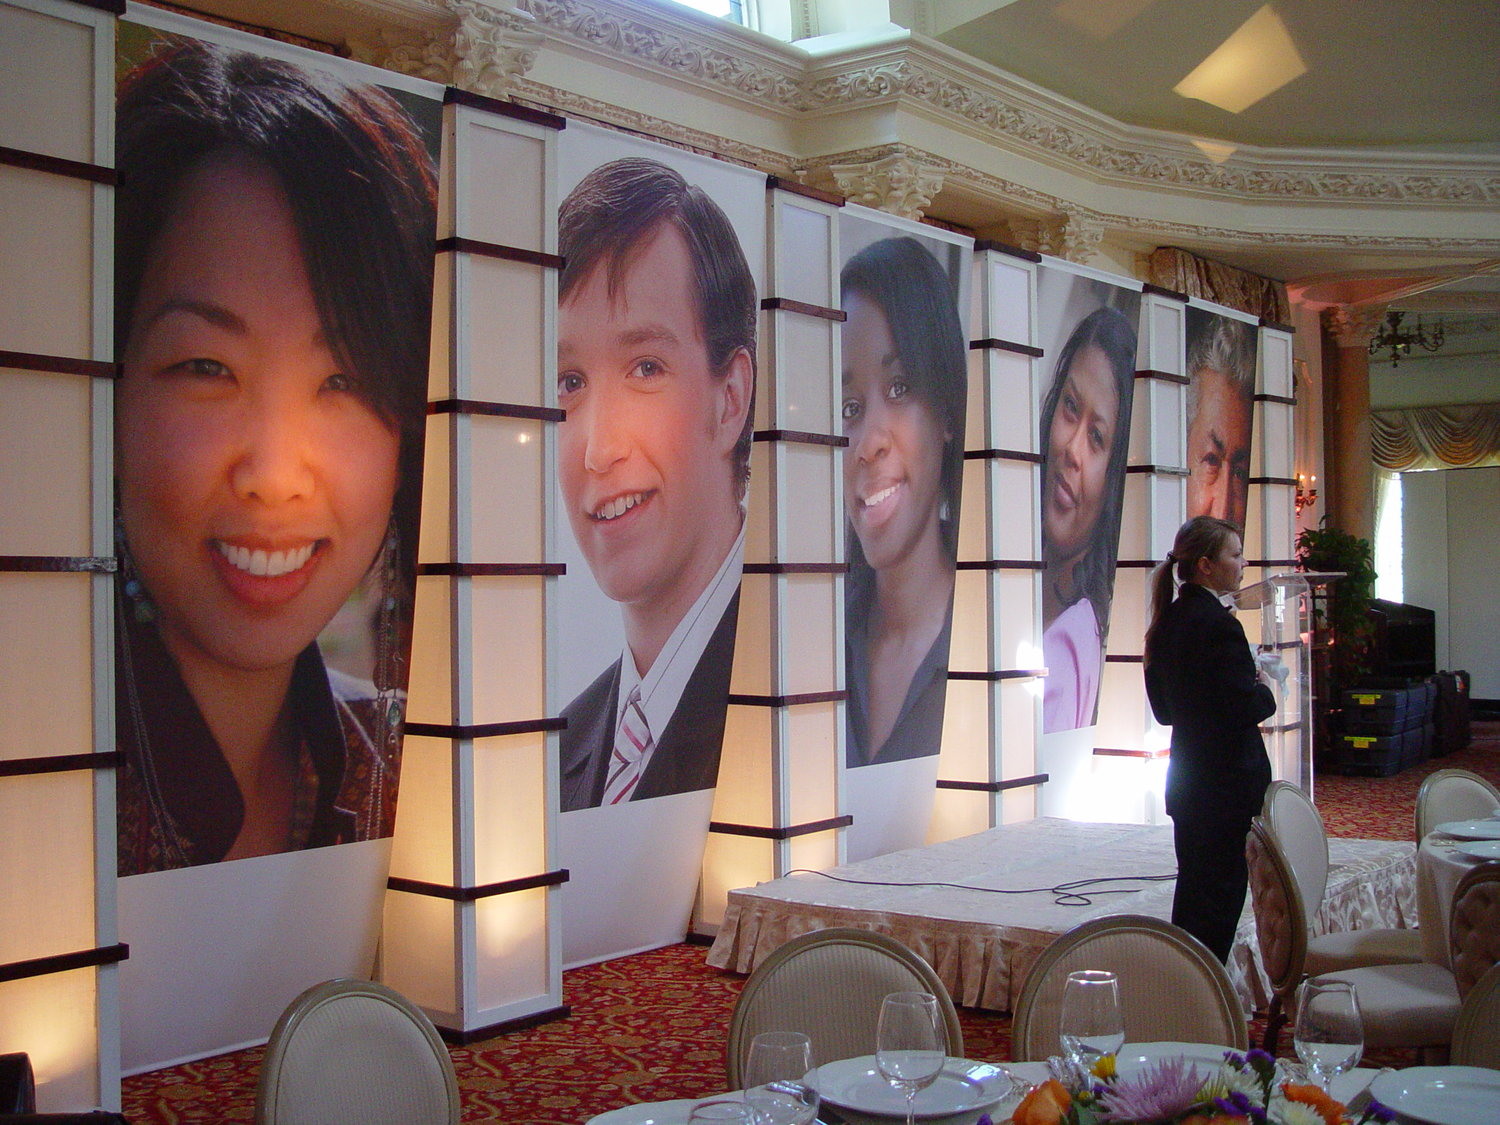 NJ_event_design_decor_fundraiser_gala_rentals_lighting_stage_props.jpg